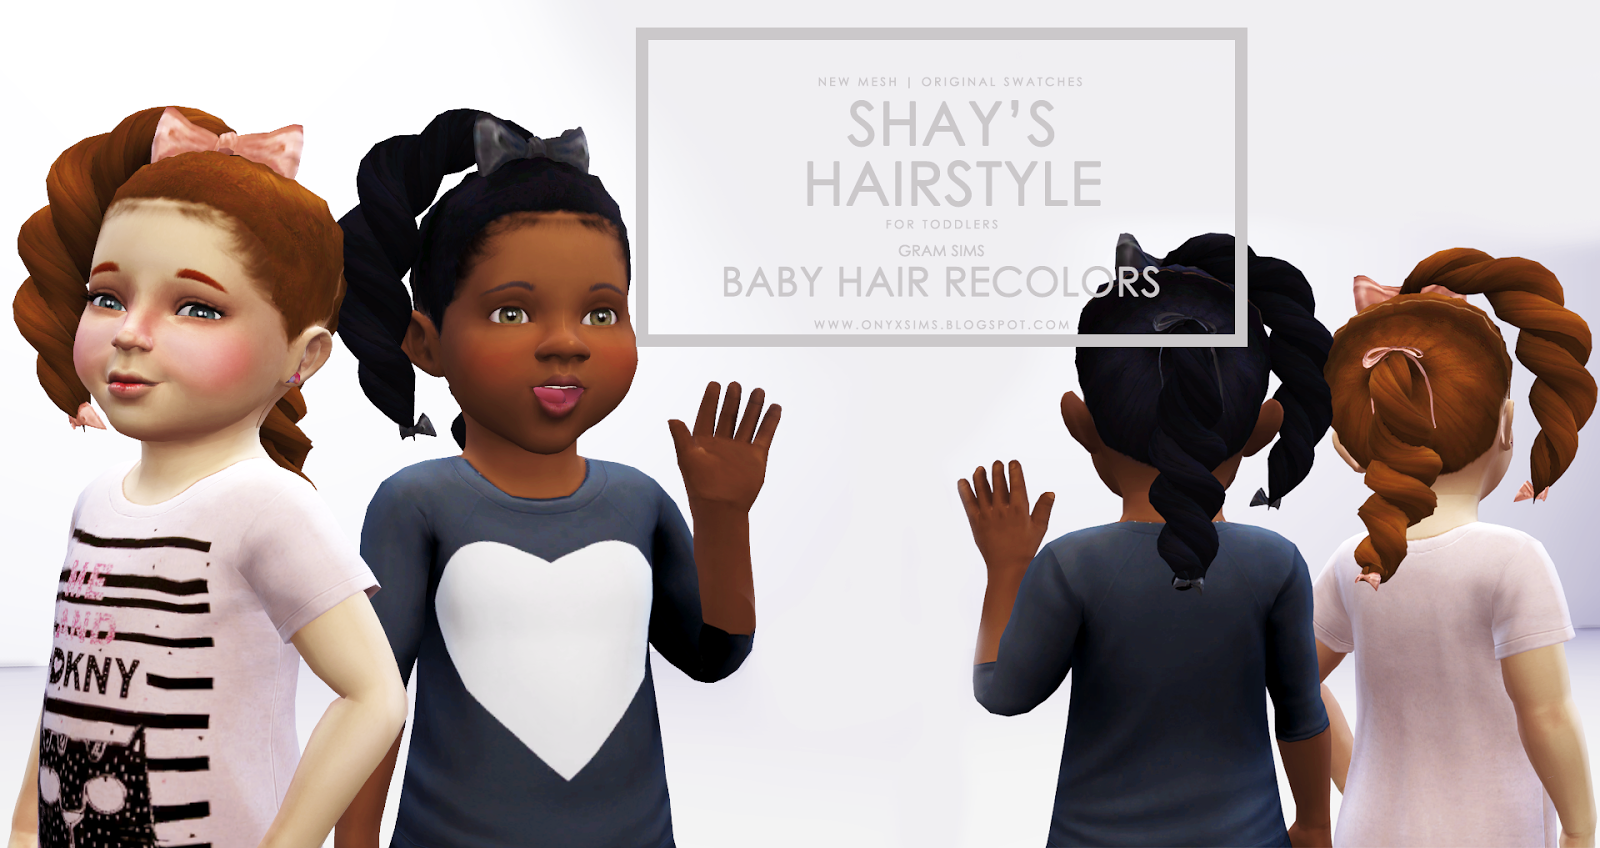 Shay S Hairstyle For Toddler Girls Onyx Sims